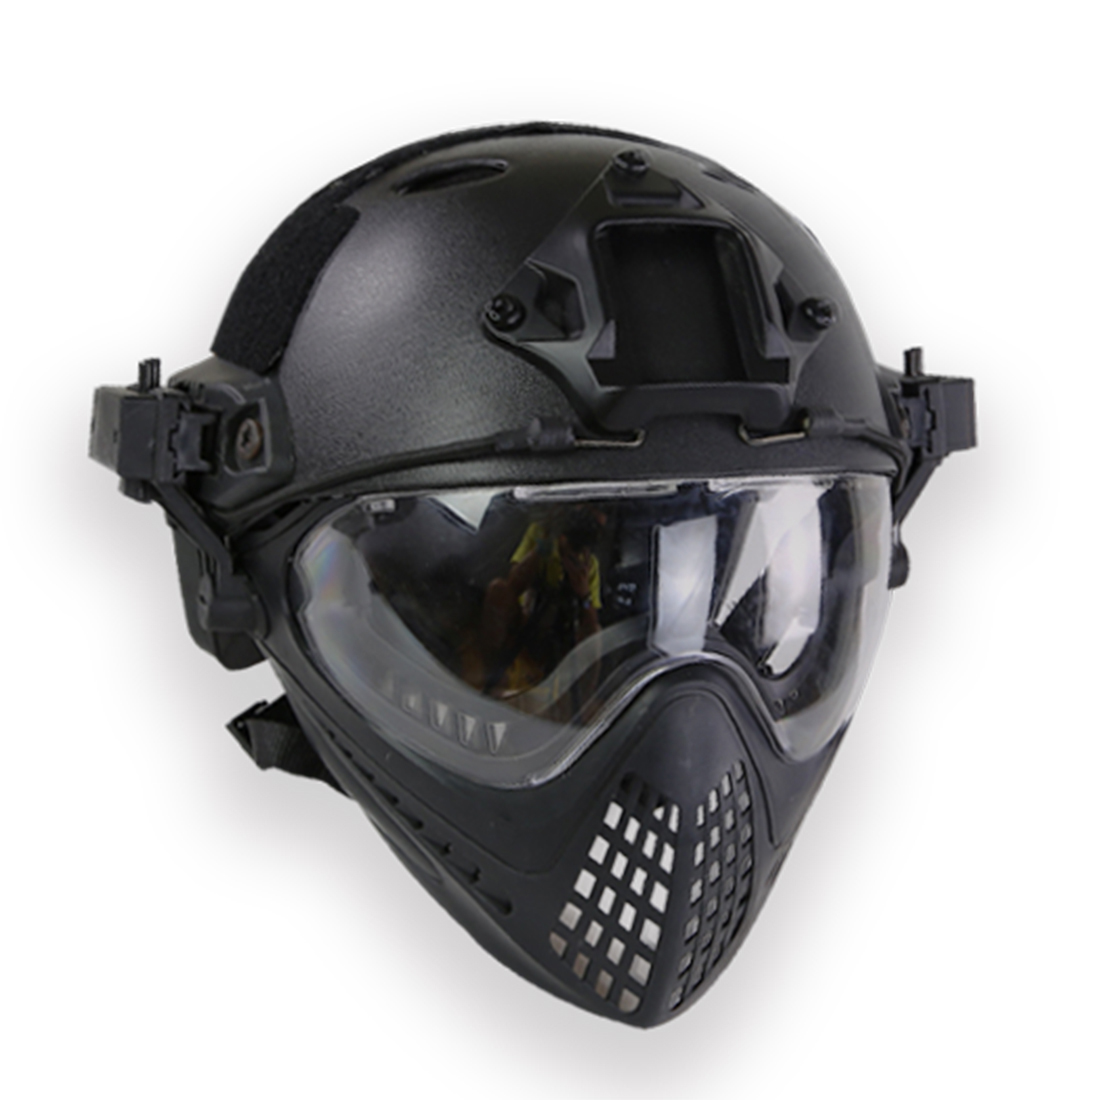 купить Surwish Navigator Tactics Camouflage Protecting Helmet for Outdoors Activities Battle Games - Black Type L по цене 5039.29 рублей